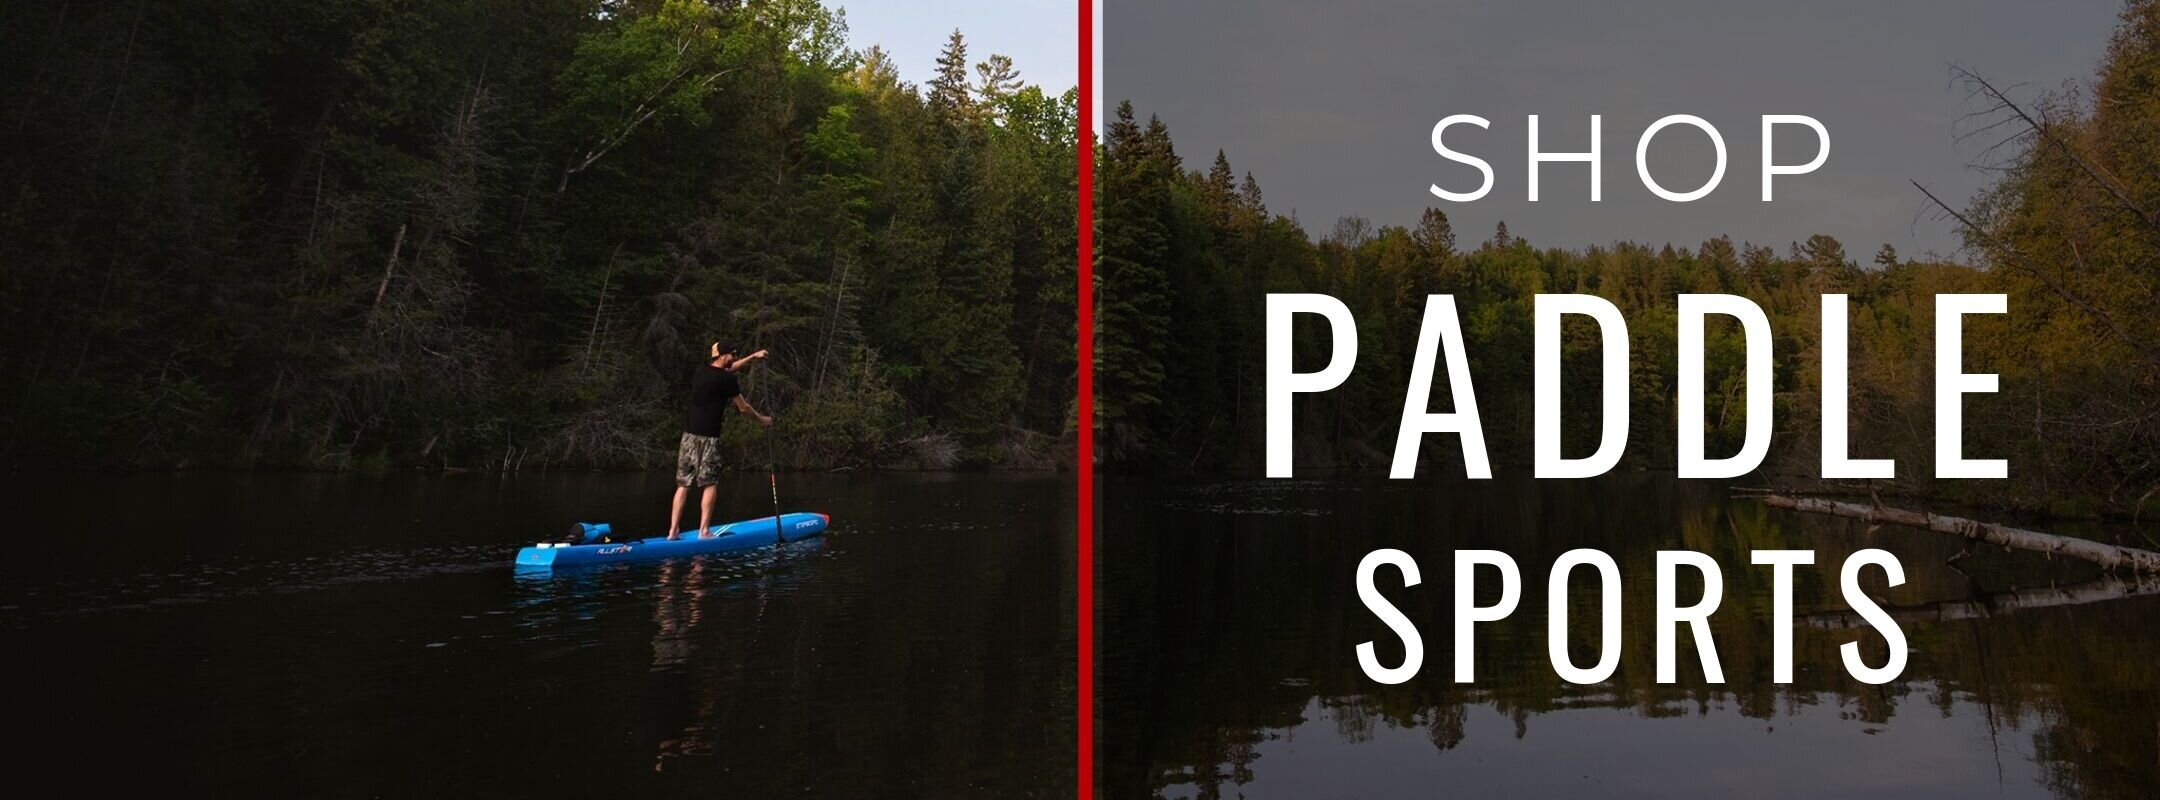 SHOP PADDLE SPORTS